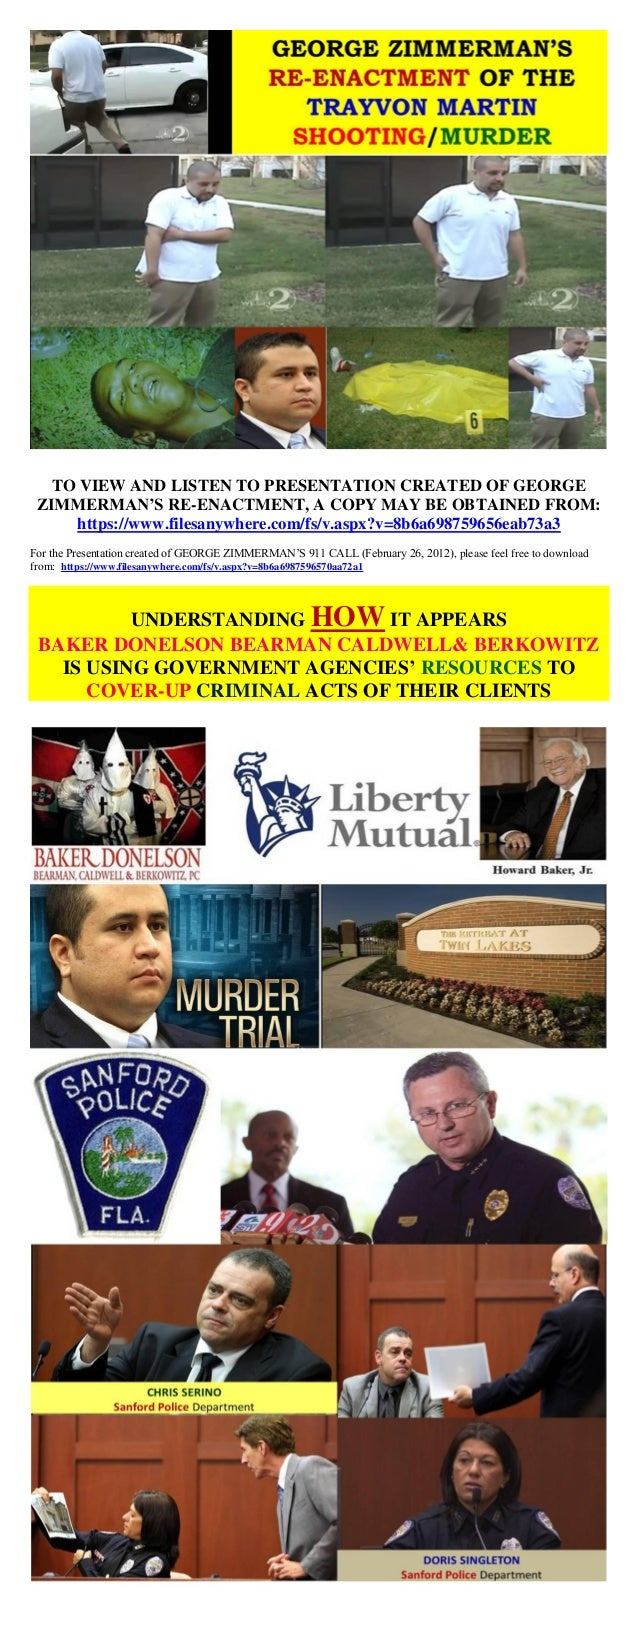 TO VIEW AND LISTEN TO PRESENTATION CREATED OF GEORGE ZIMMERMAN'S RE-ENACTMENT, A COPY MAY BE OBTAINED FROM: https://www.fi...